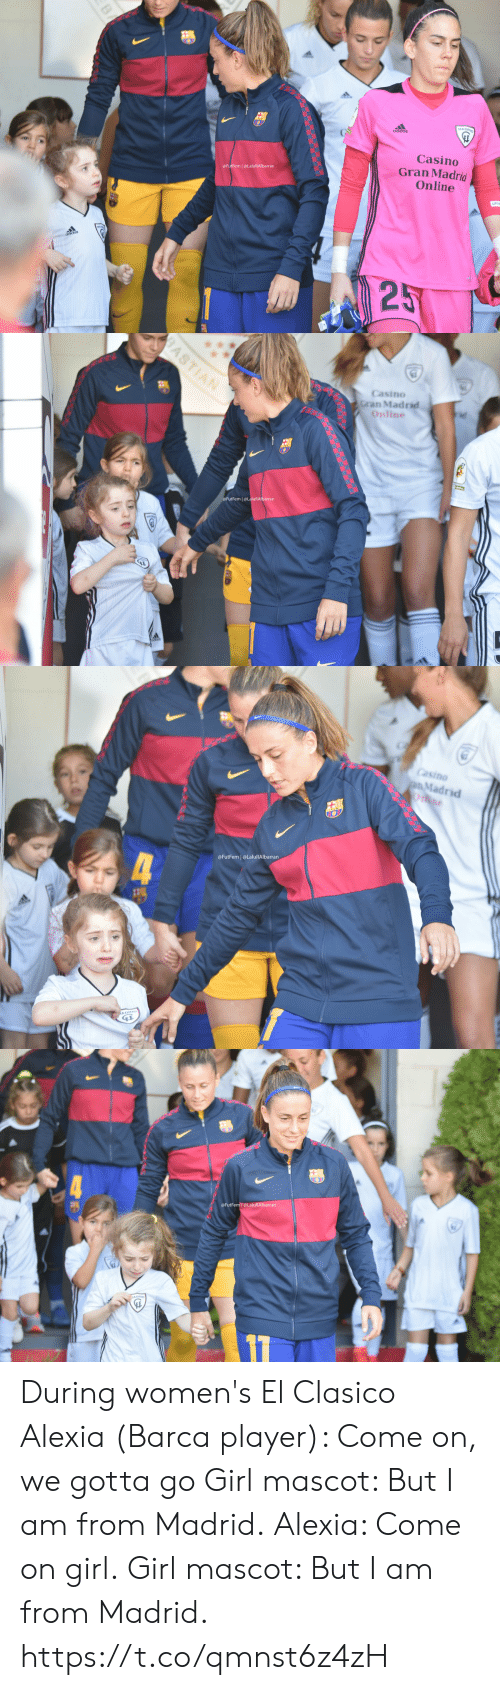 madrid: Casino  Gran Madrid  Online  @FutFem | @LaluRAlbarran  25  BA   BASTIAN  Casino  Gran Madrid  Online  FutFem @LaluRAlbarran   Casino  pMadrid  Onne  @FutFem @LaluRAlbarran  4  KADRIO   @FutFem@LaluRAlbarran During women's El Clasico  Alexia (Barca player): Come on, we gotta go Girl mascot: But I am from Madrid. Alexia: Come on girl. Girl mascot: But I am from Madrid.  https://t.co/qmnst6z4zH